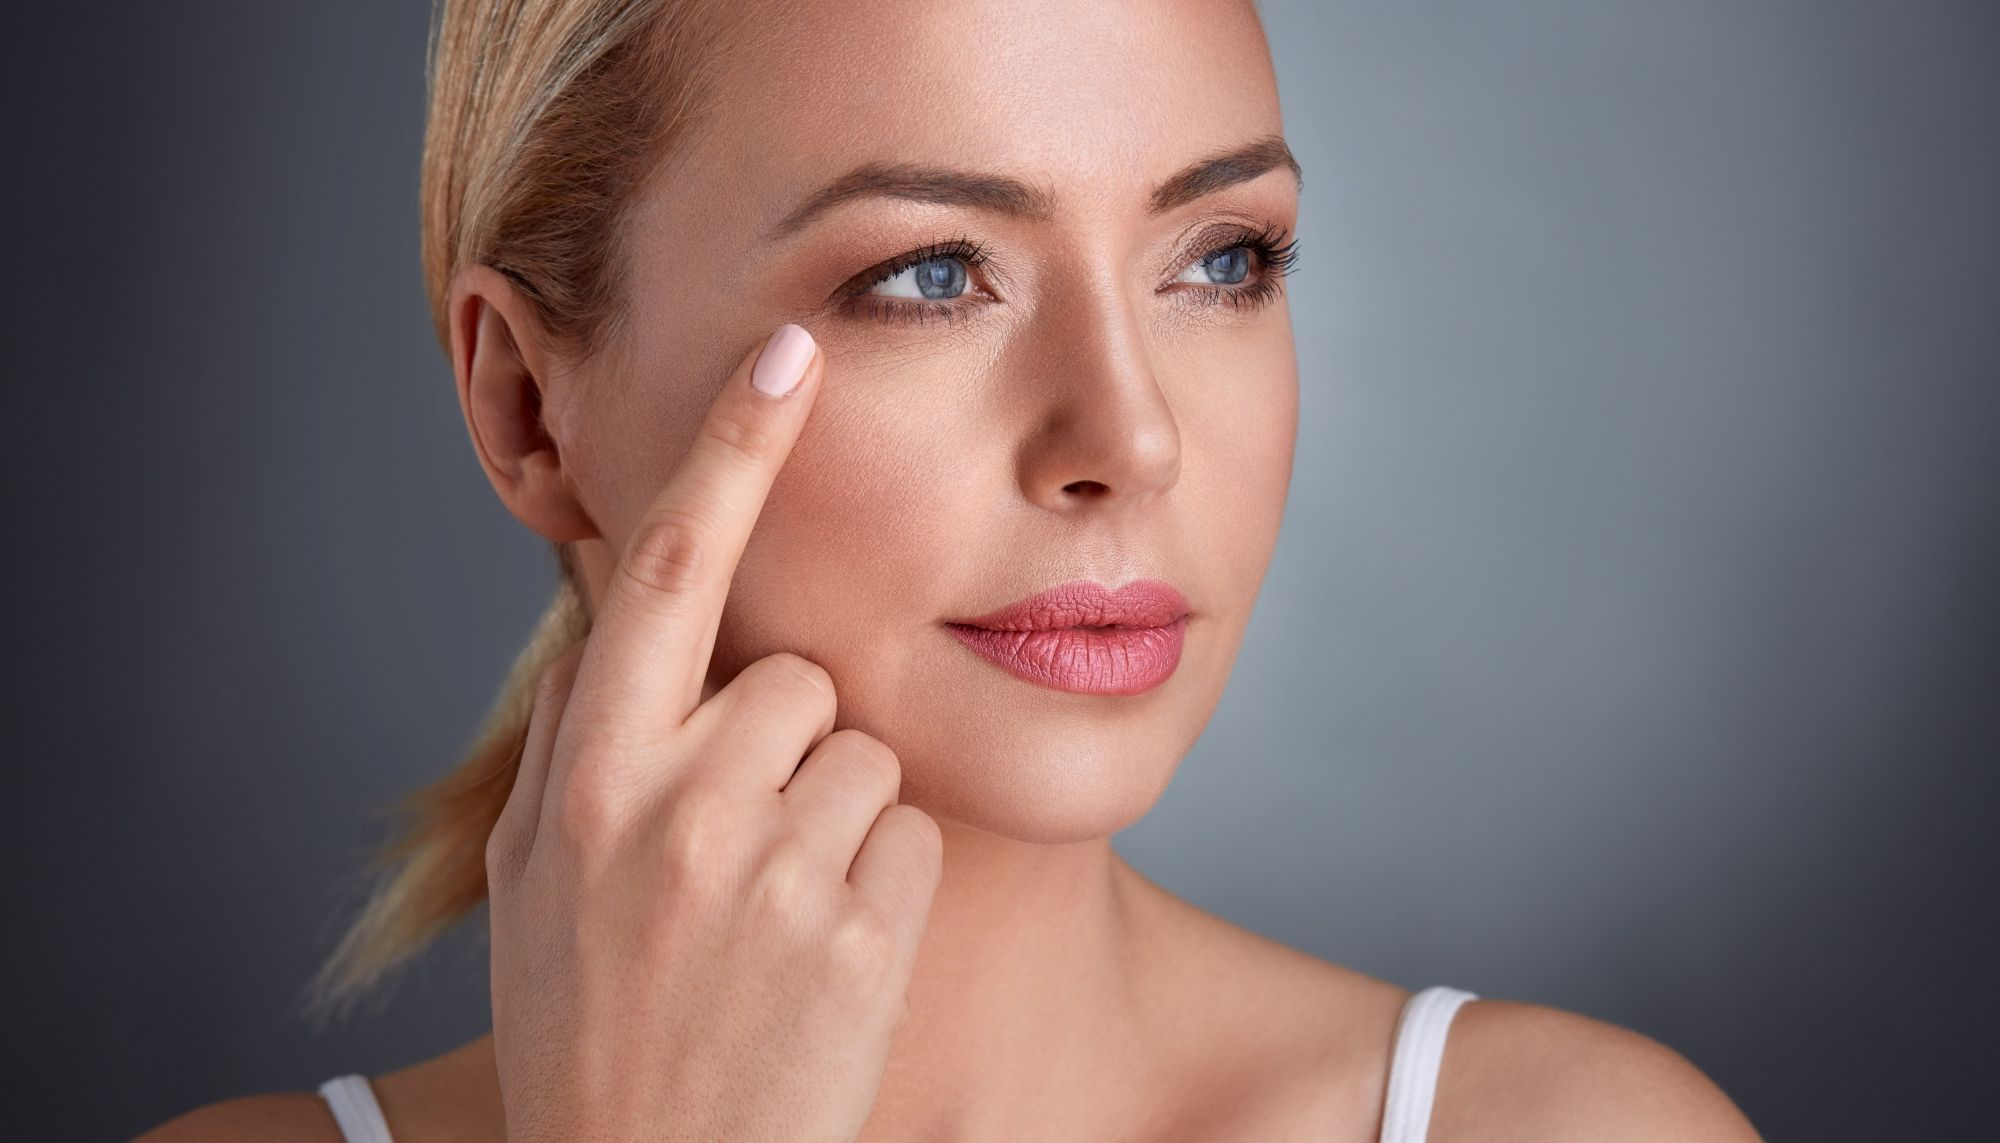 Reversing the Signs of Skin Damage – With Minimal Downtime